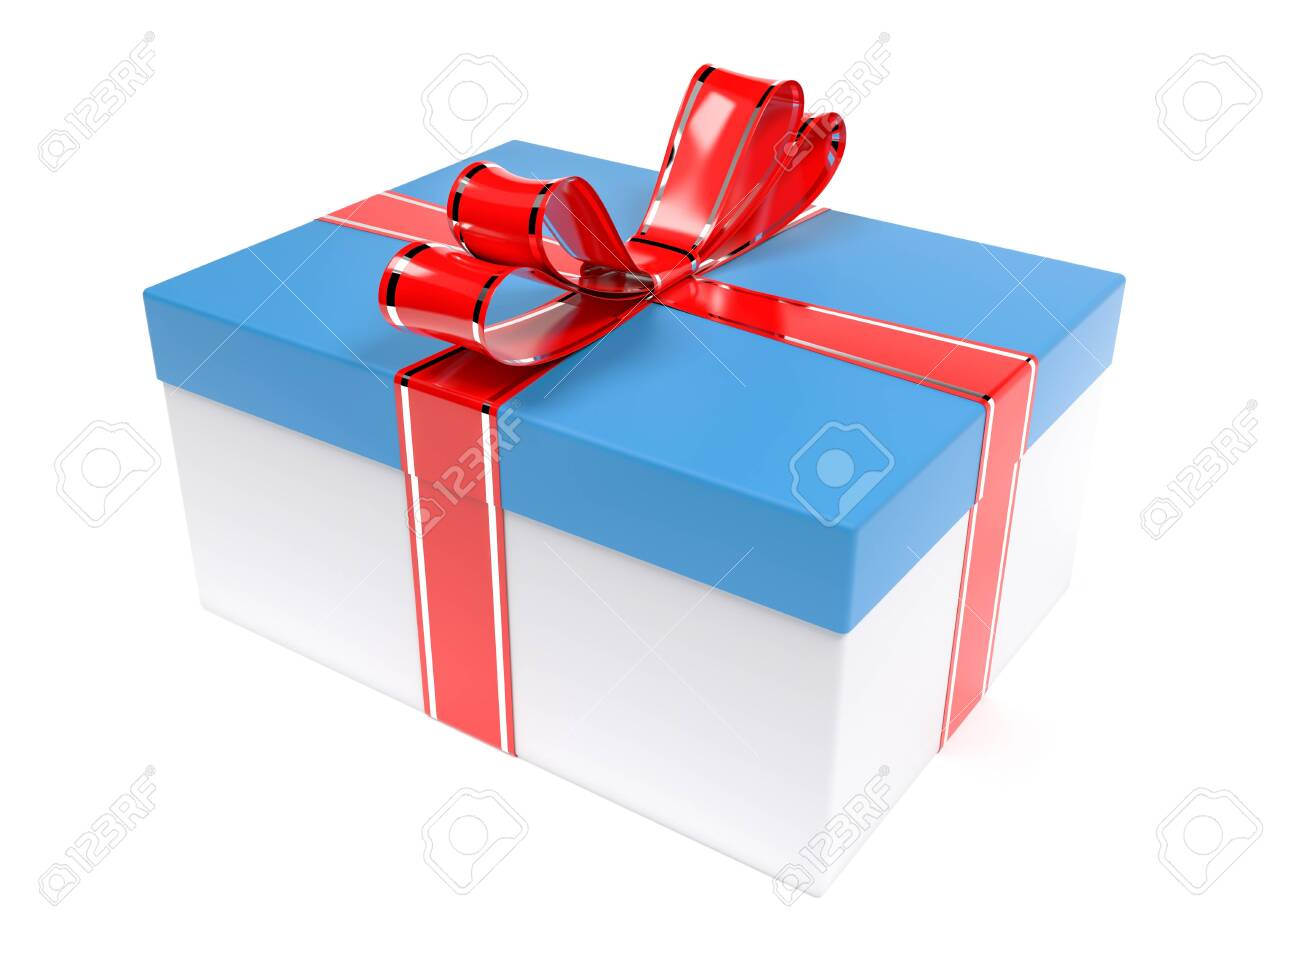 Christmas gift. Blue box with red ribbon bow. 3d rendering illustration isolated on white background - 150520886